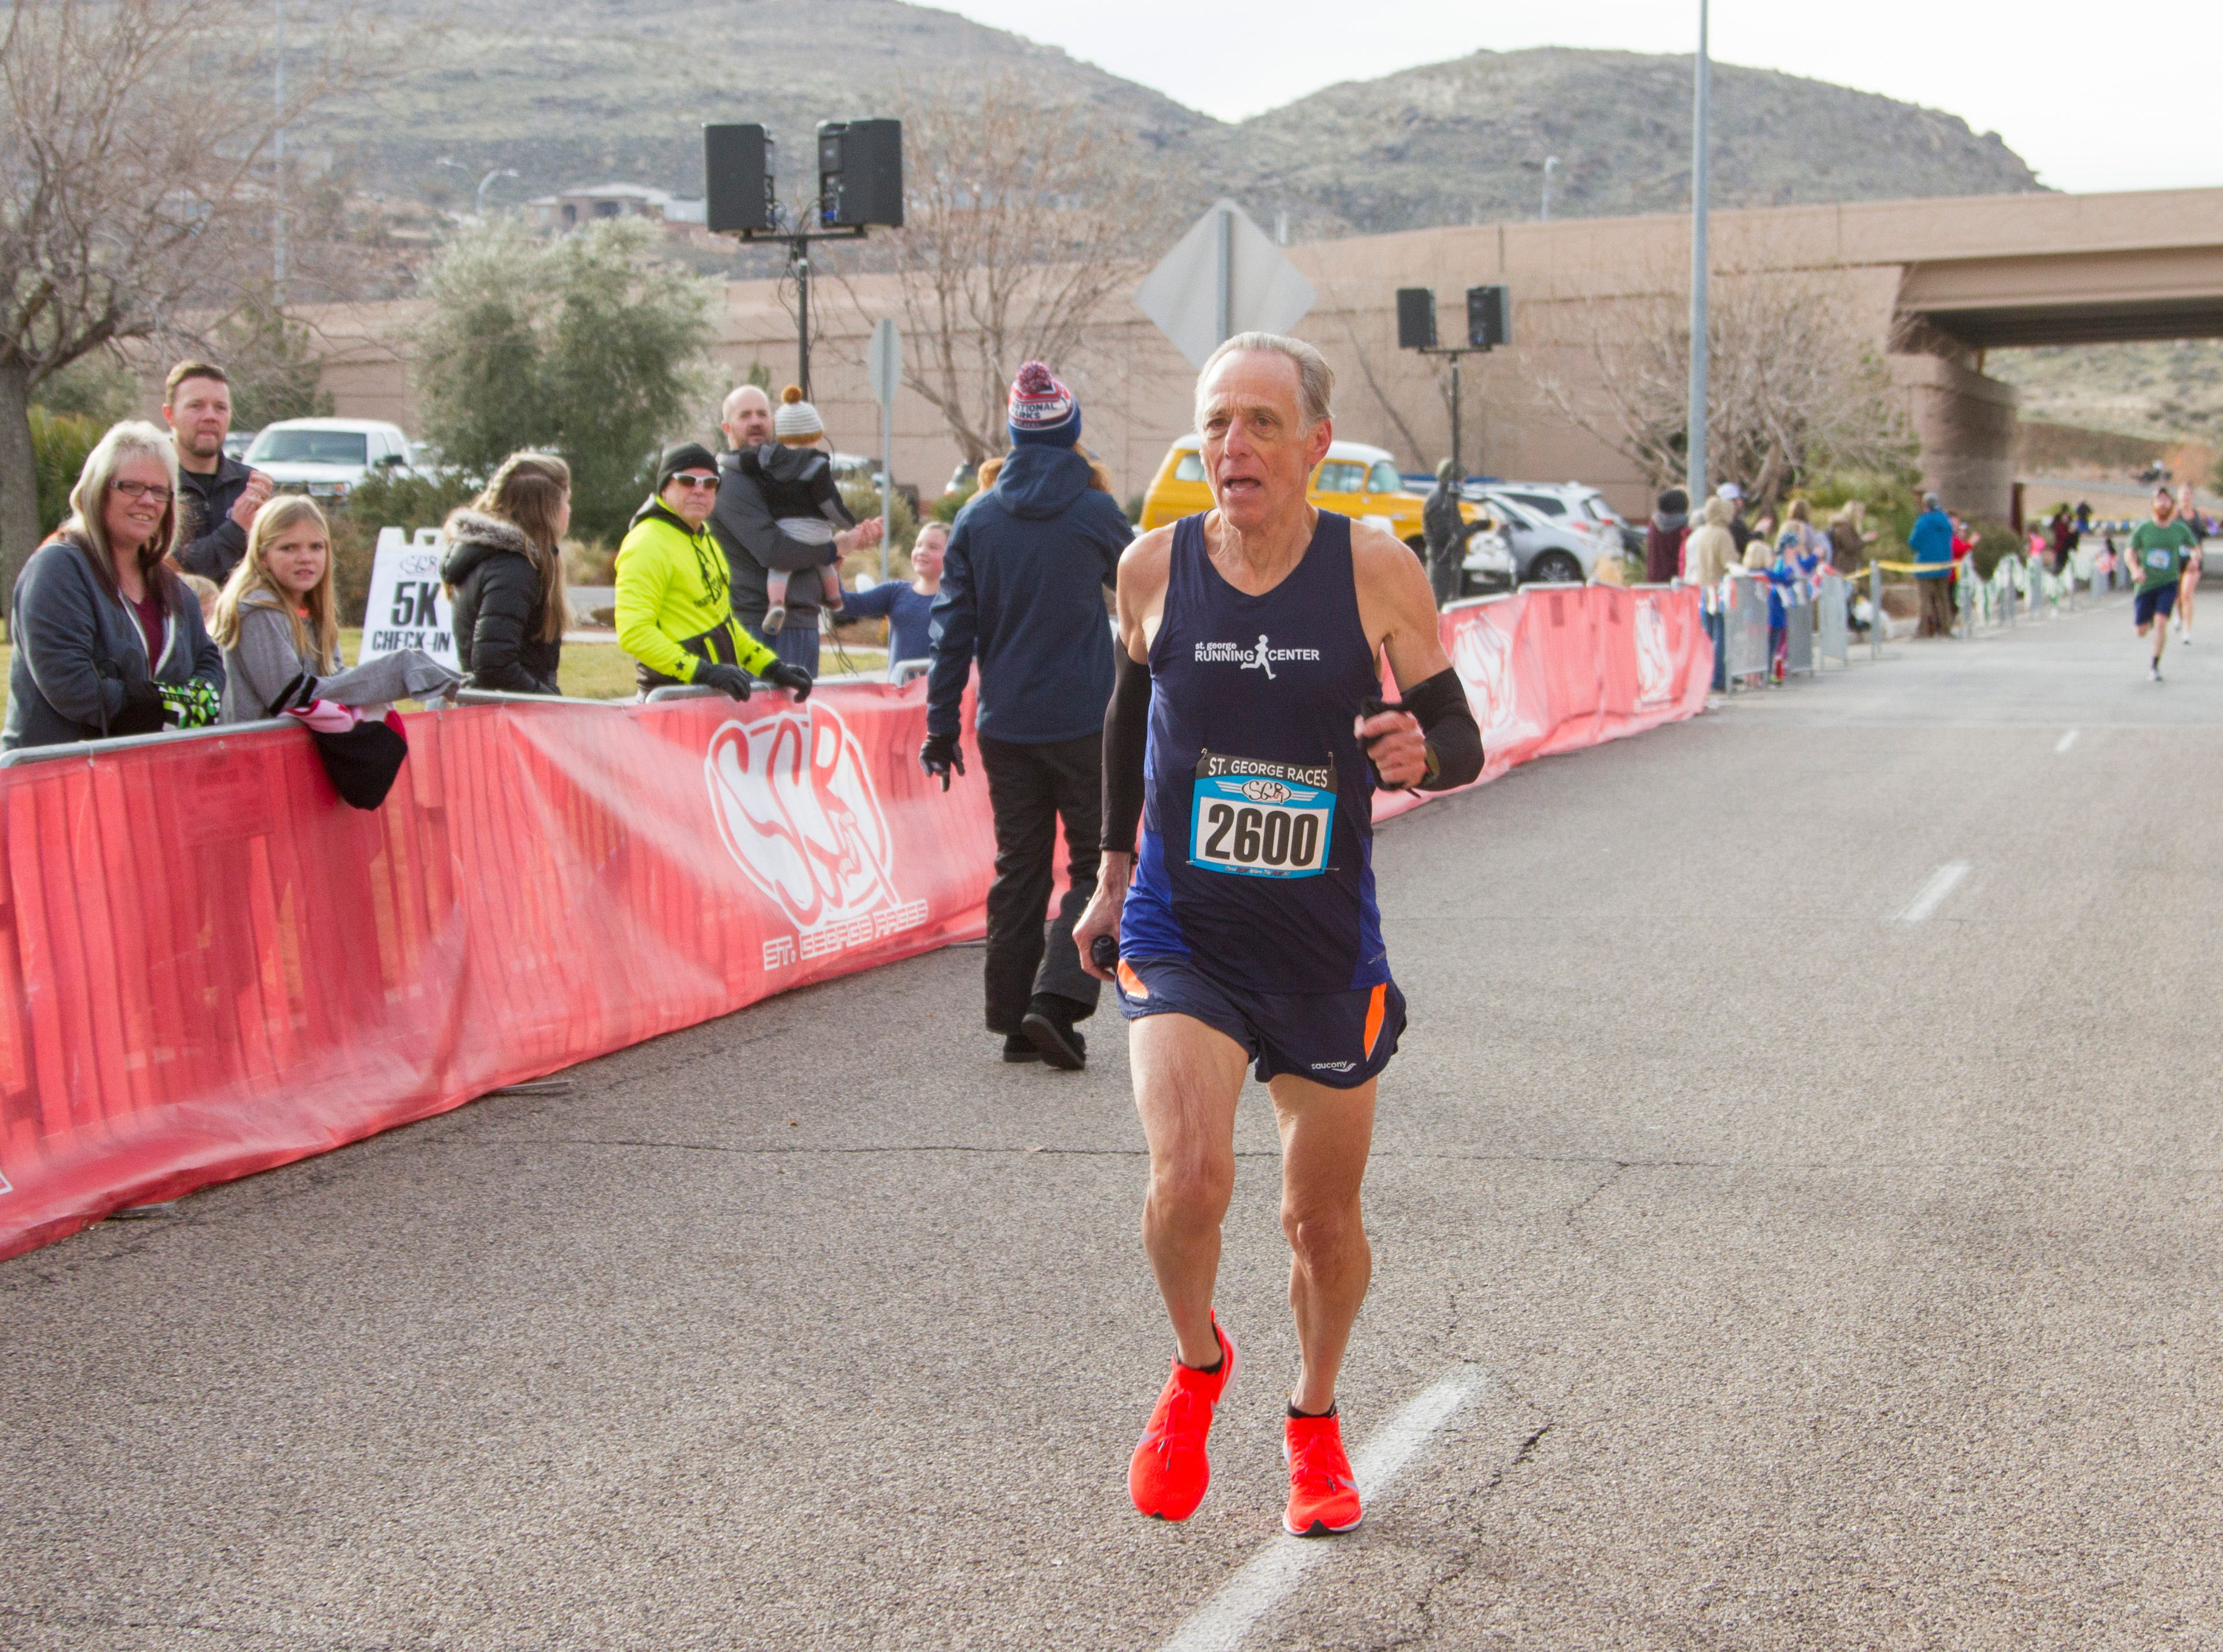 Runners compete in the St. George Half Marathon and 5K Saturday, Jan. 19, 2019.